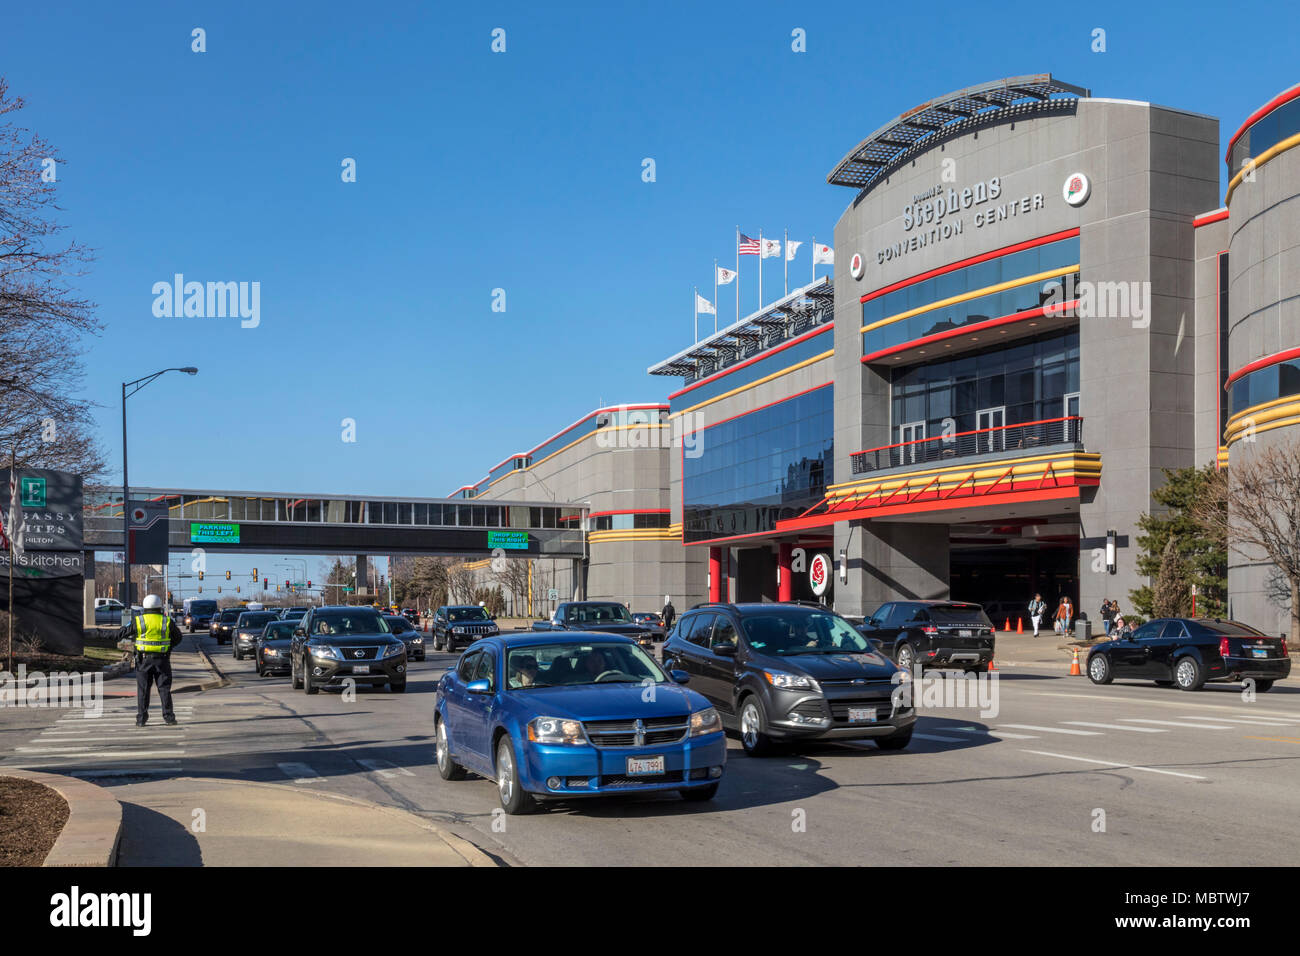 Rosemont, Illinois - The Donald E. Stephens Convention Center near Chicago's O'Hare Airport. - Stock Image